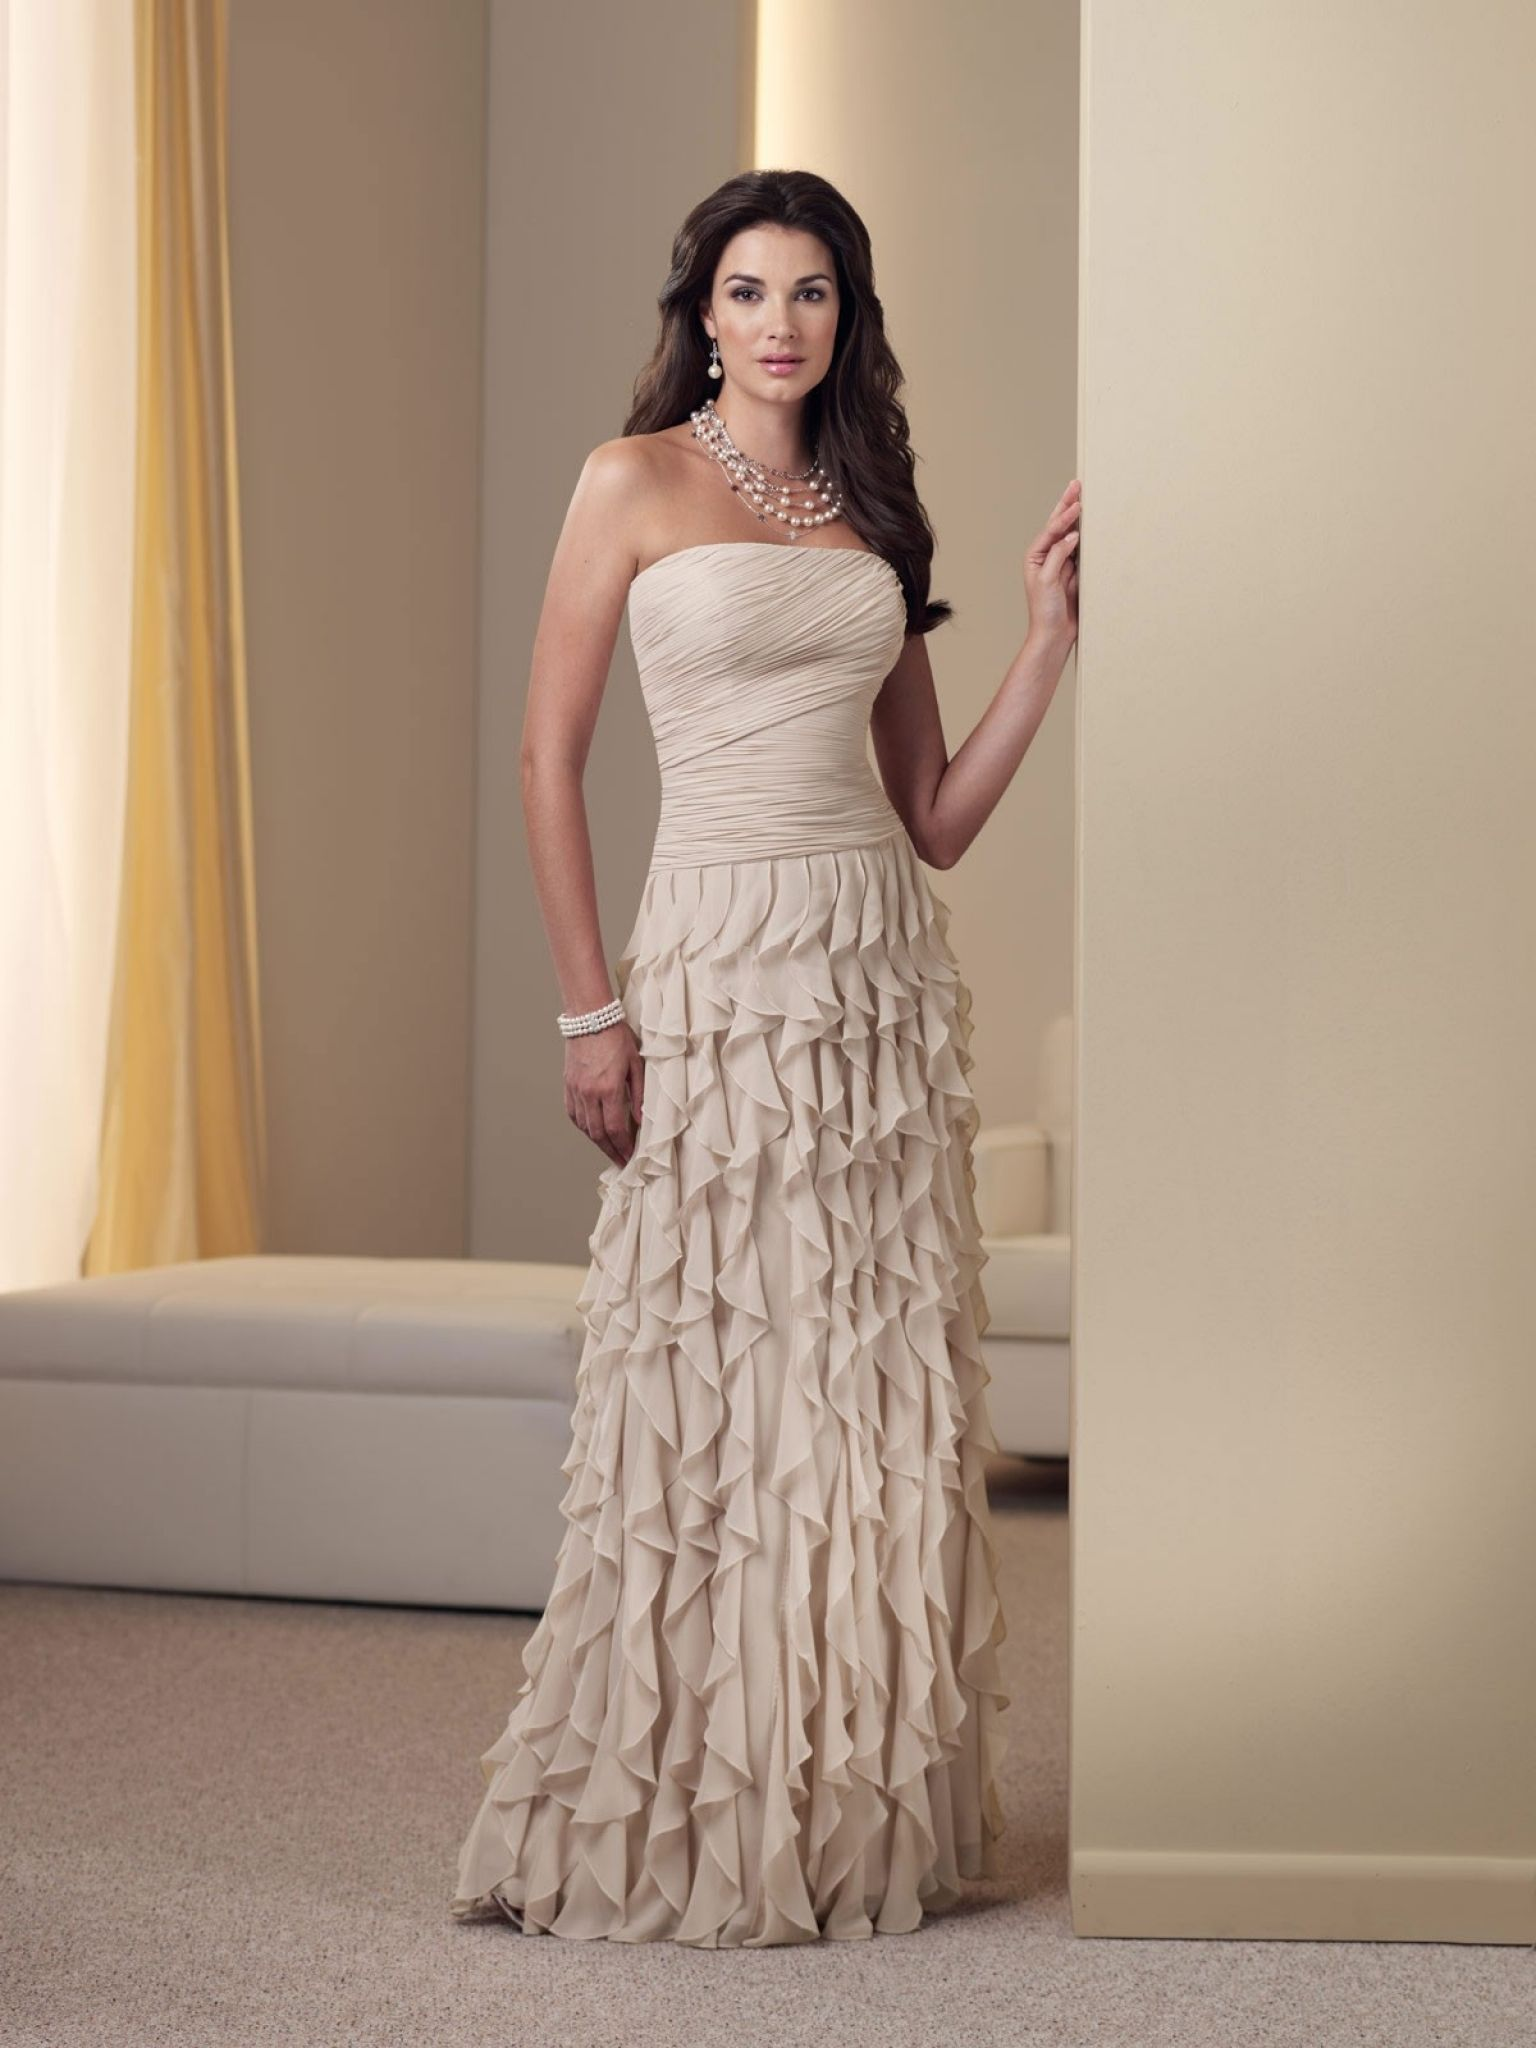 Wedding dresses for mother of the bride  mother of the bride beach dresses for weddings dresses for guest